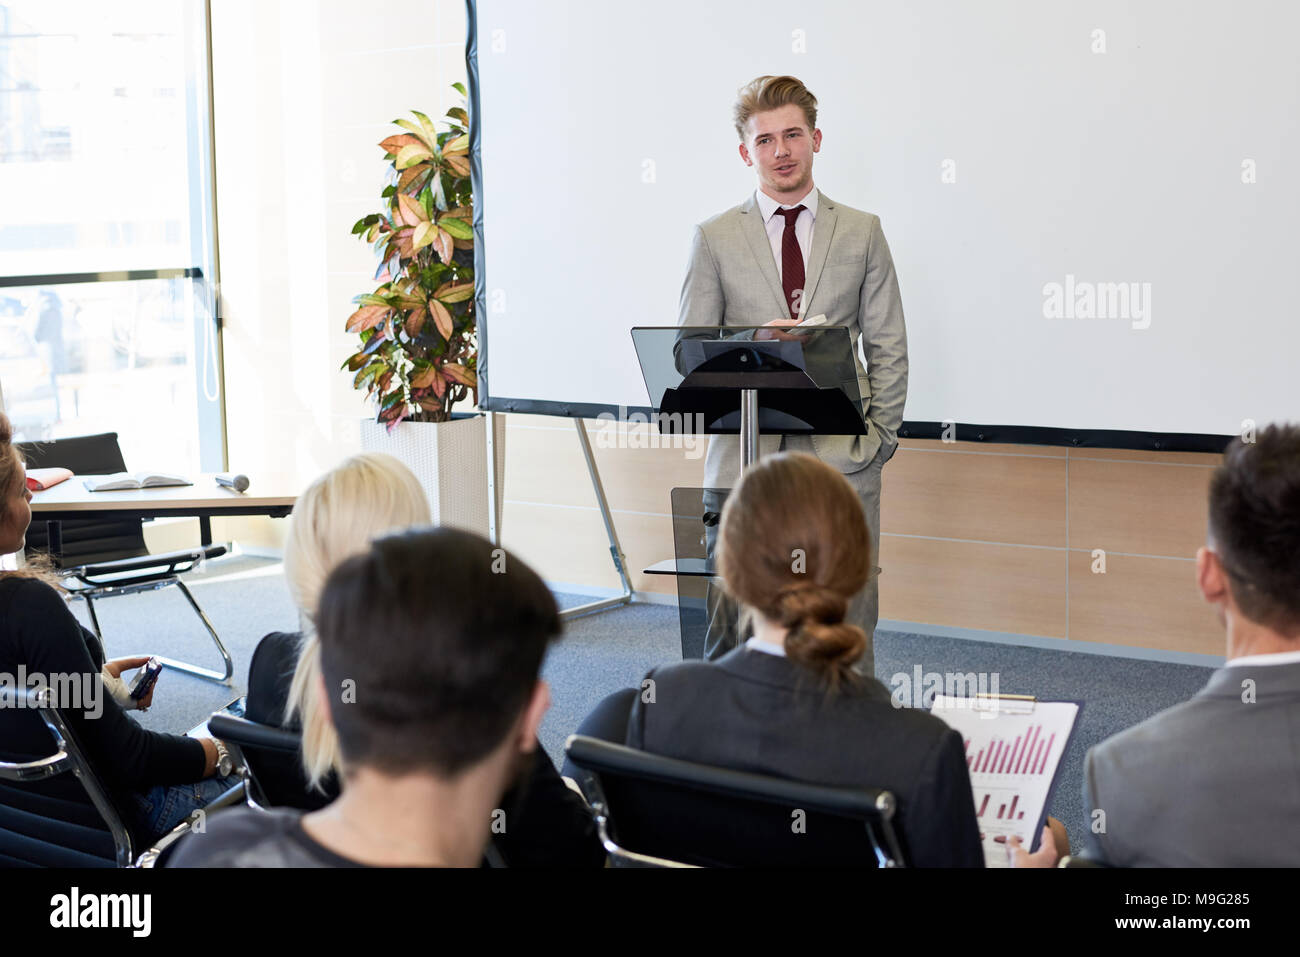 Startup Businessman Presenting Project - Stock Image